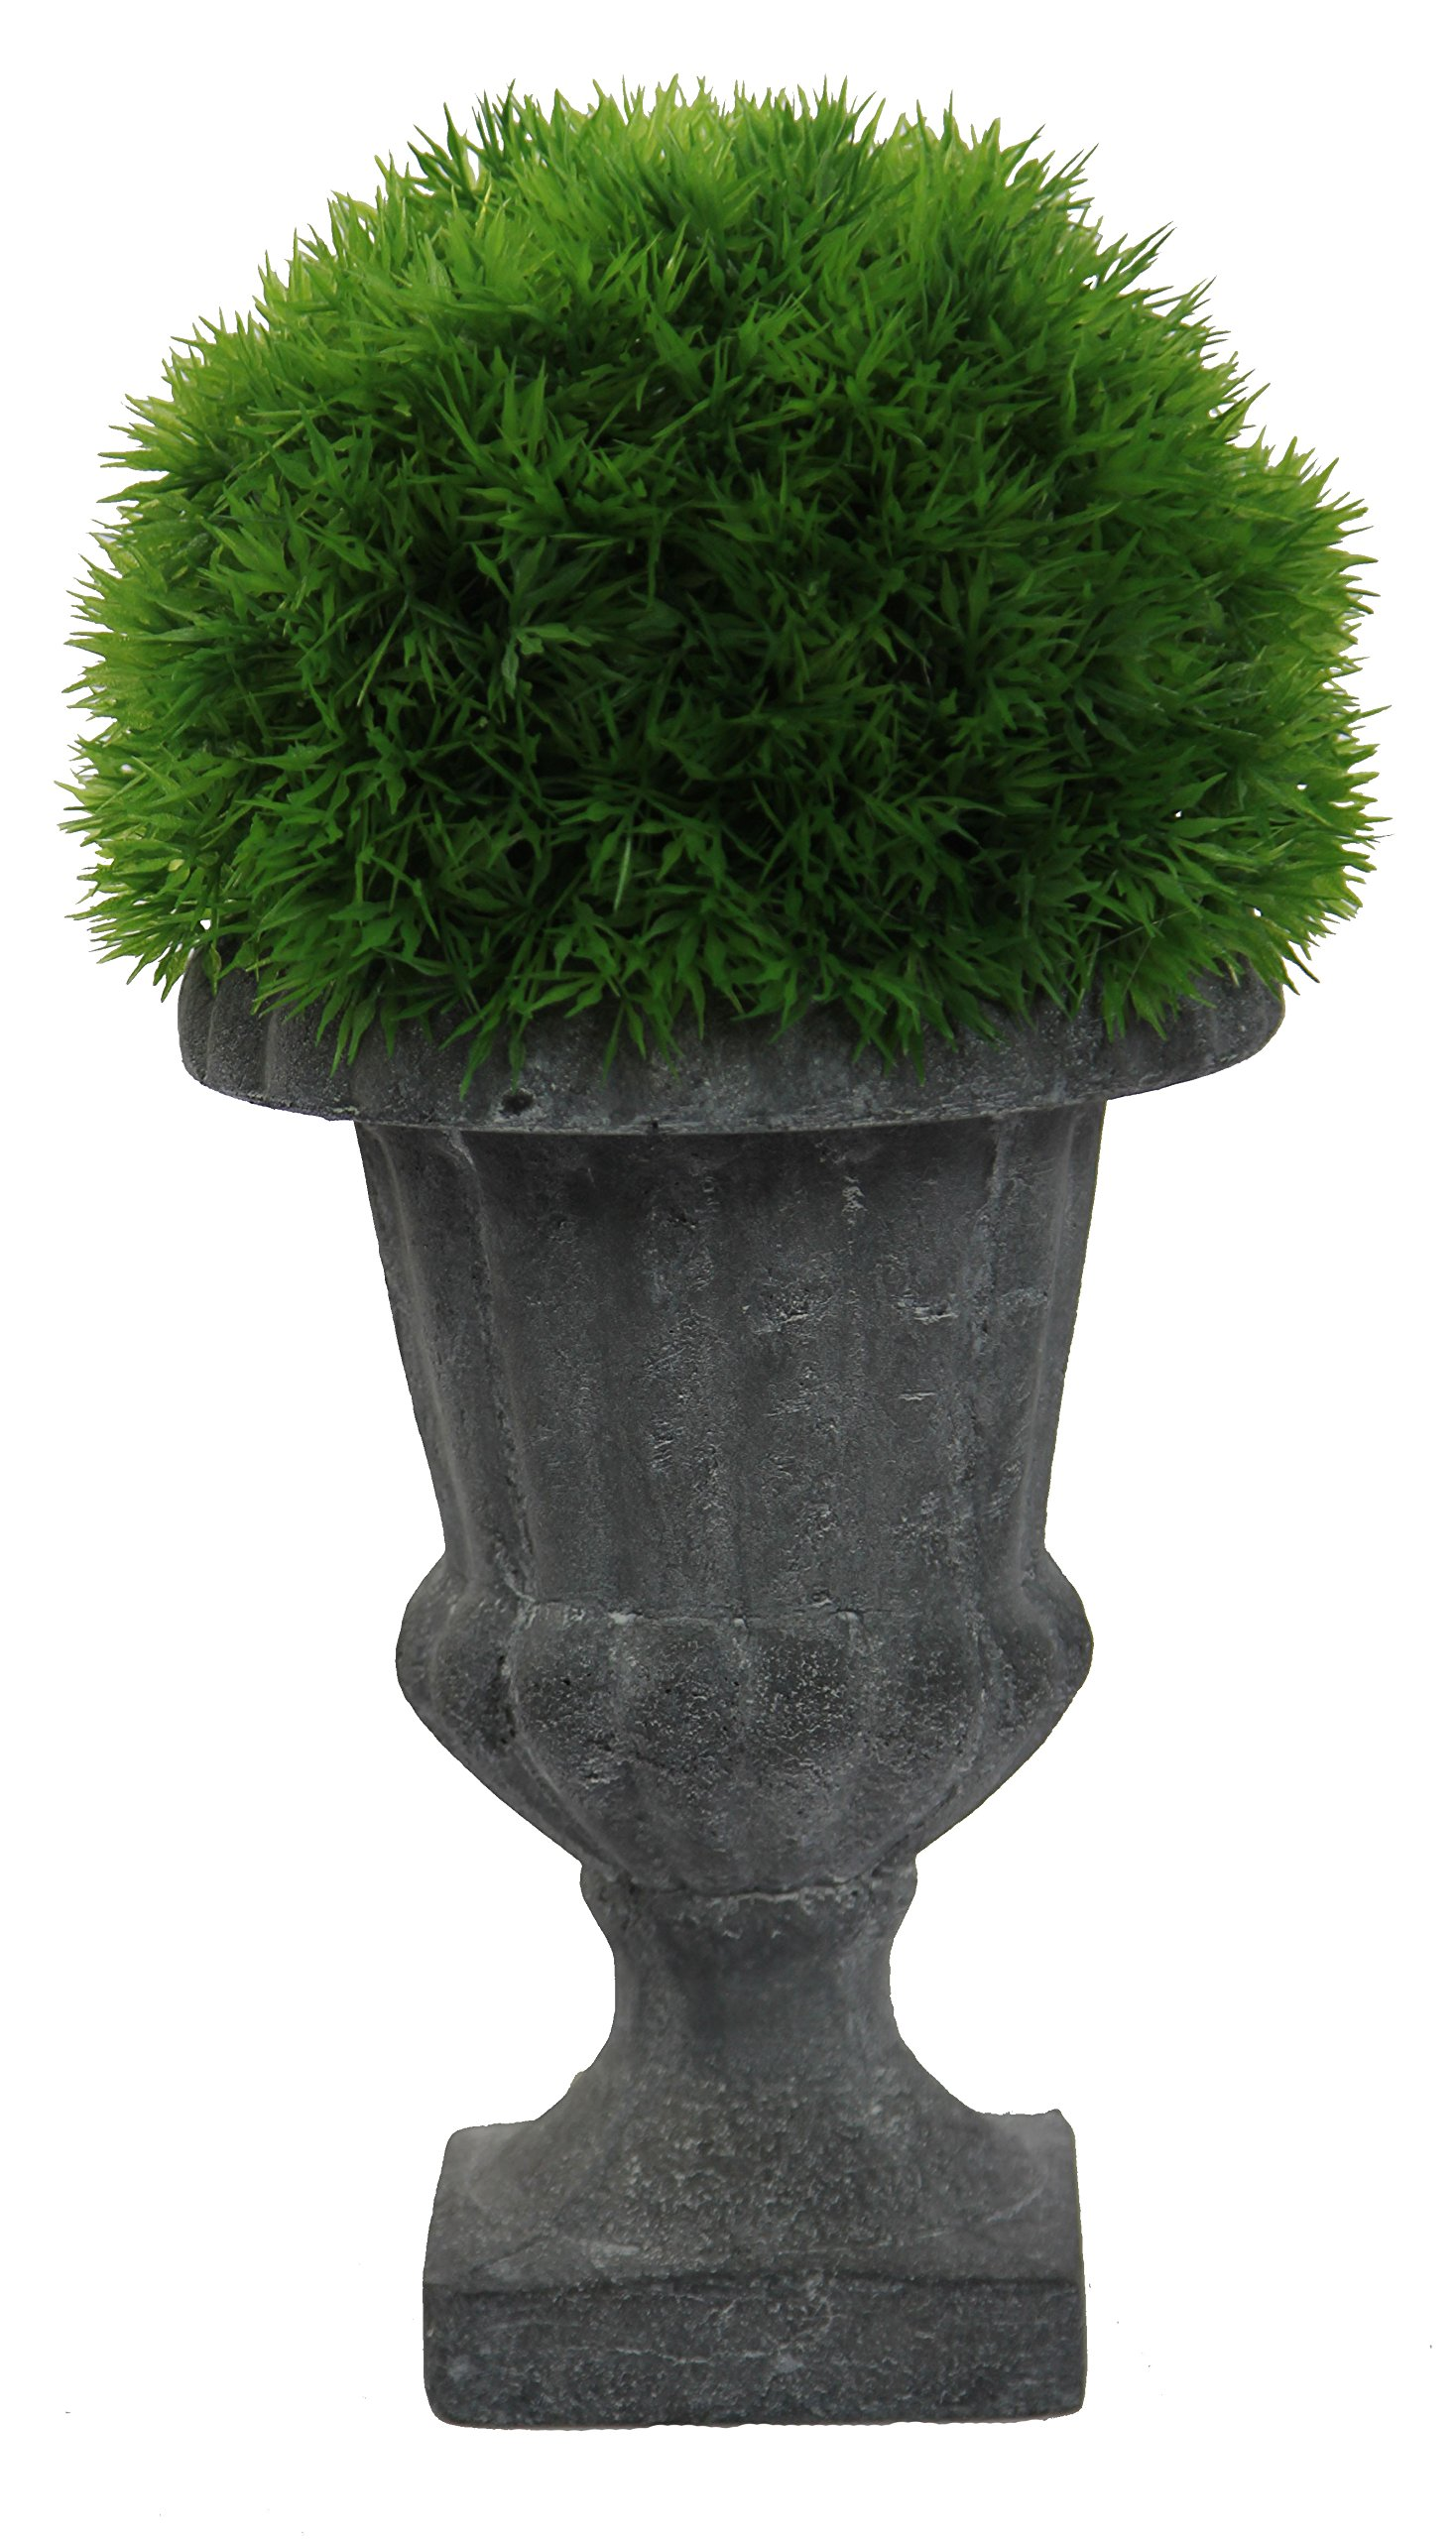 Admired-By-Nature-Ntrl-Faux-Tyme-Topiary-with-in-Urn-Small-Green